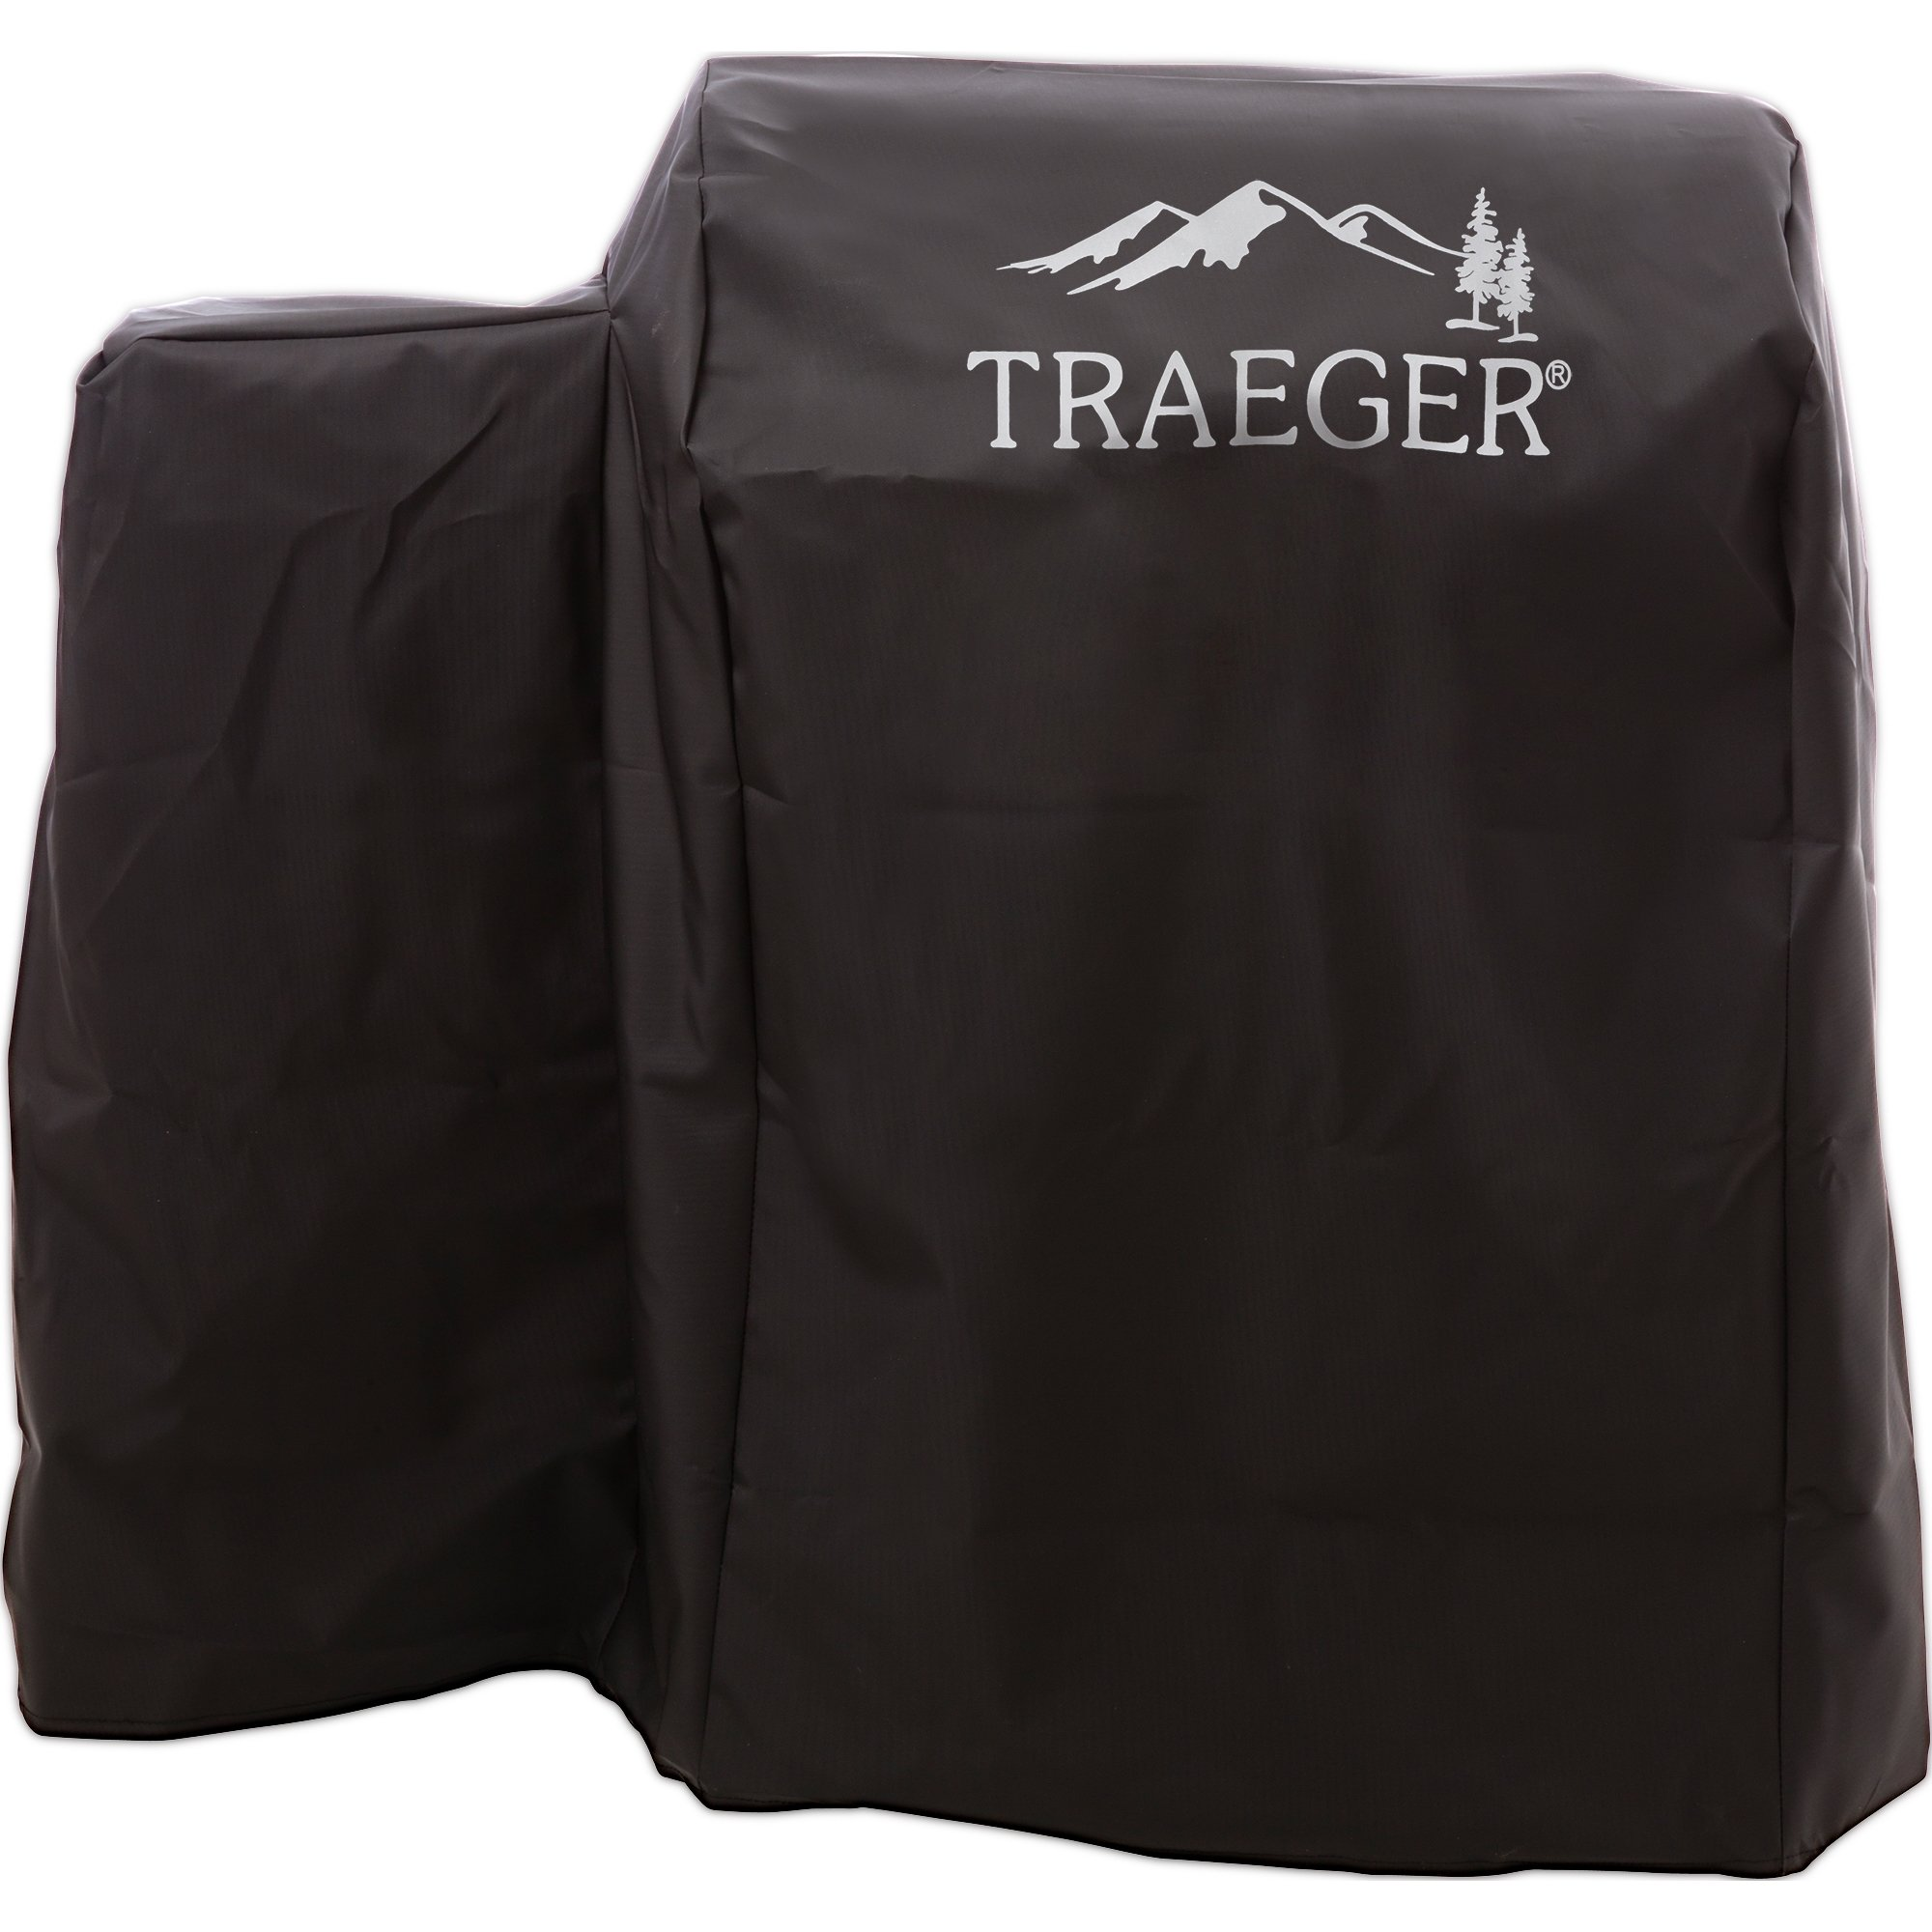 Traeger BAC374 20 Series Full Length Grill Cover